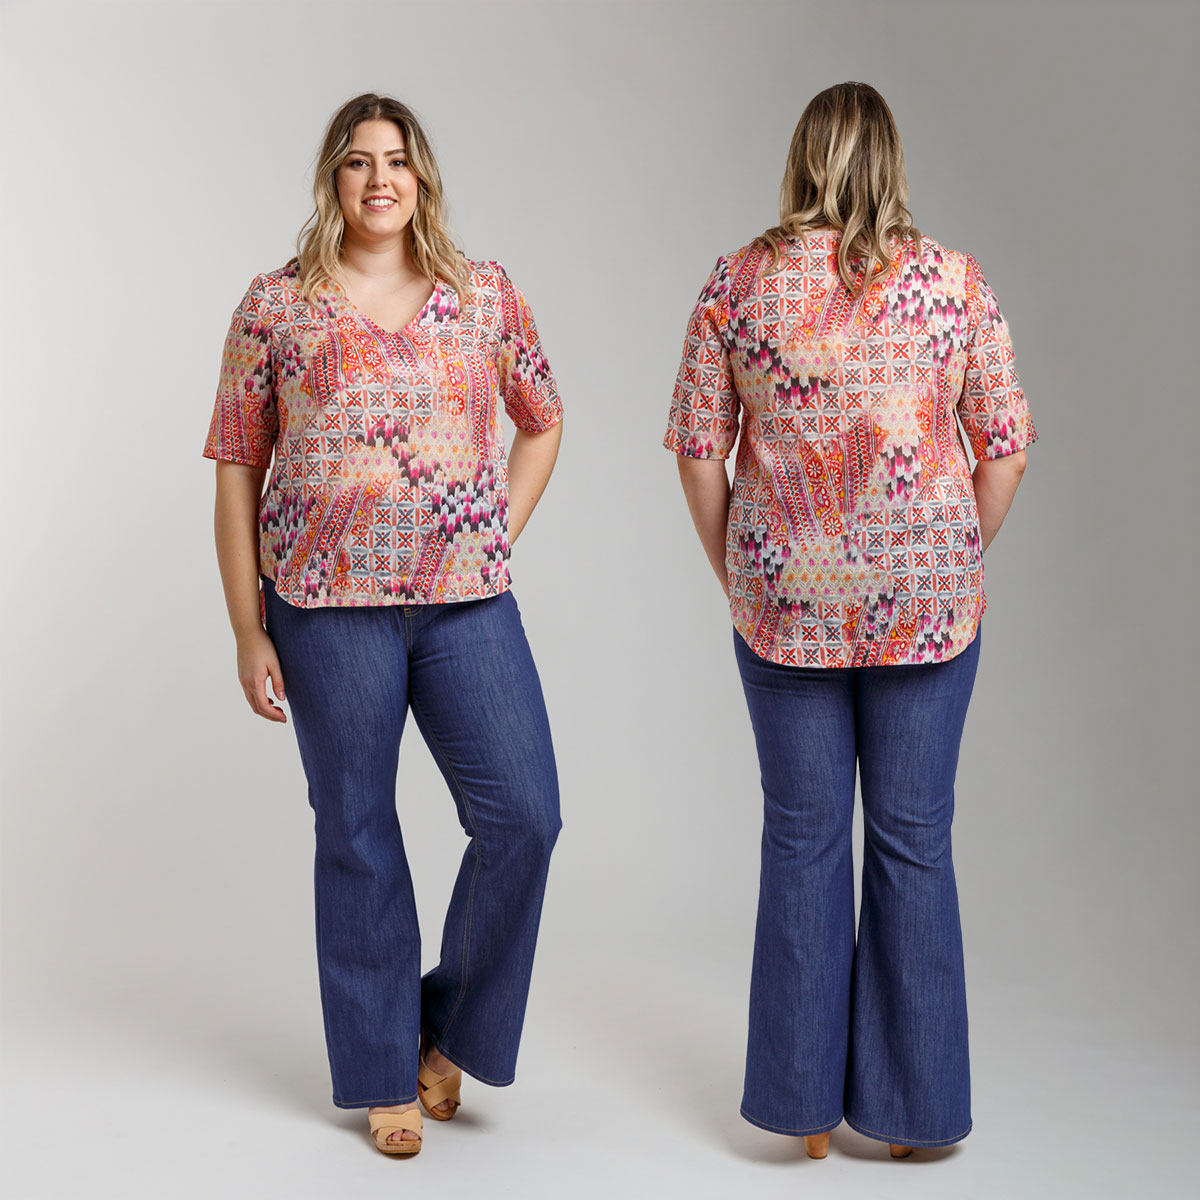 Introducing the Dove blouse sewing pattern now available in sizes 0-30!